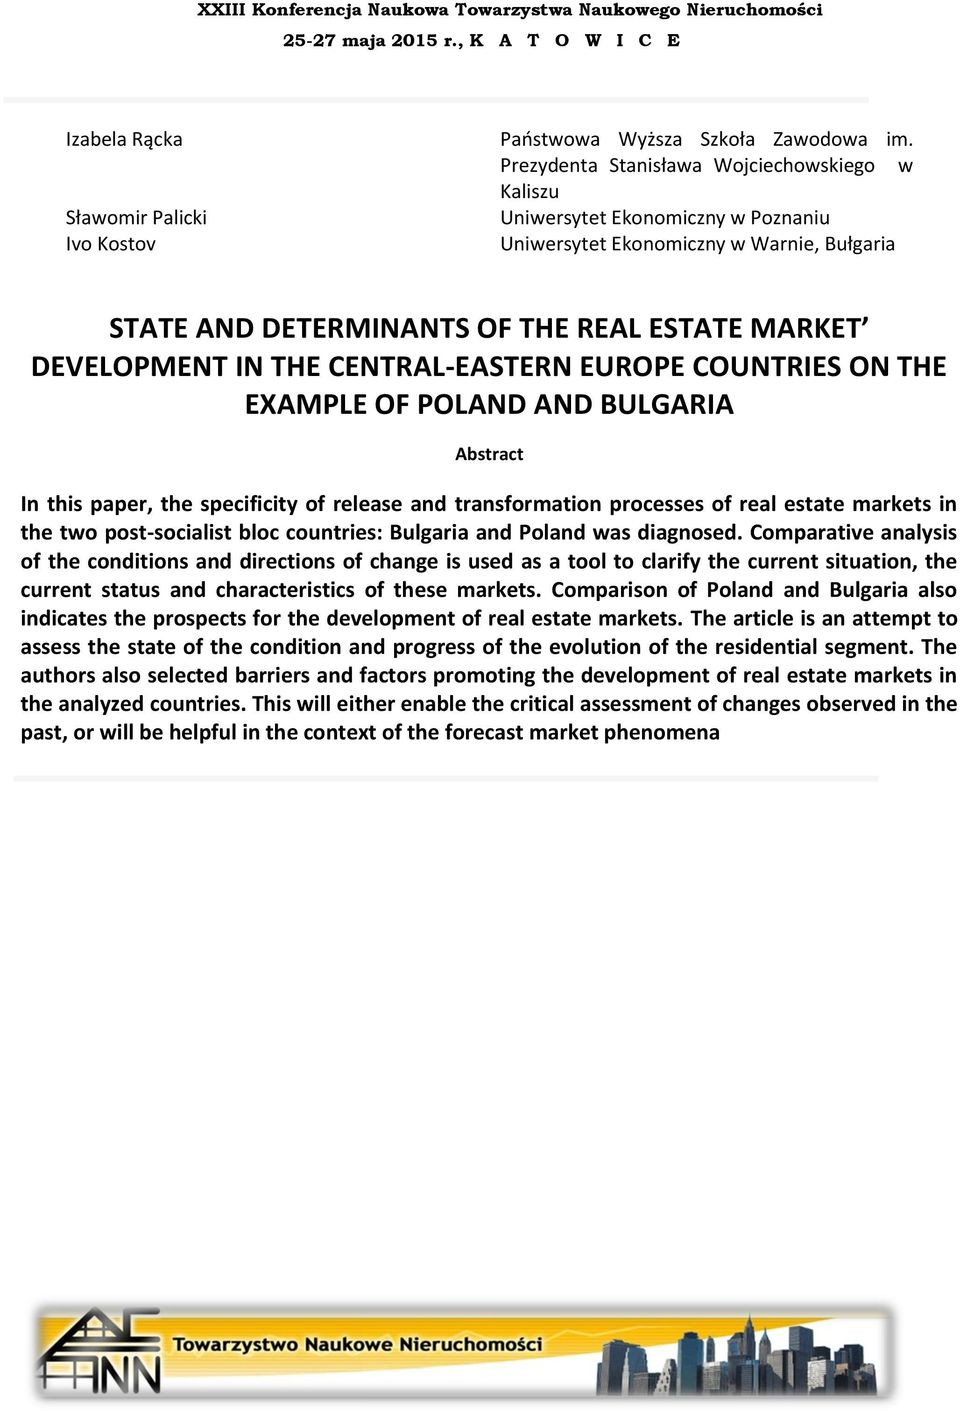 CENTRAL-EASTERN EUROPE COUNTRIES ON THE EXAMPLE OF POLAND AND BULGARIA Abstract In this paper, the specificity of release and transformation processes of real estate markets in the two post-socialist